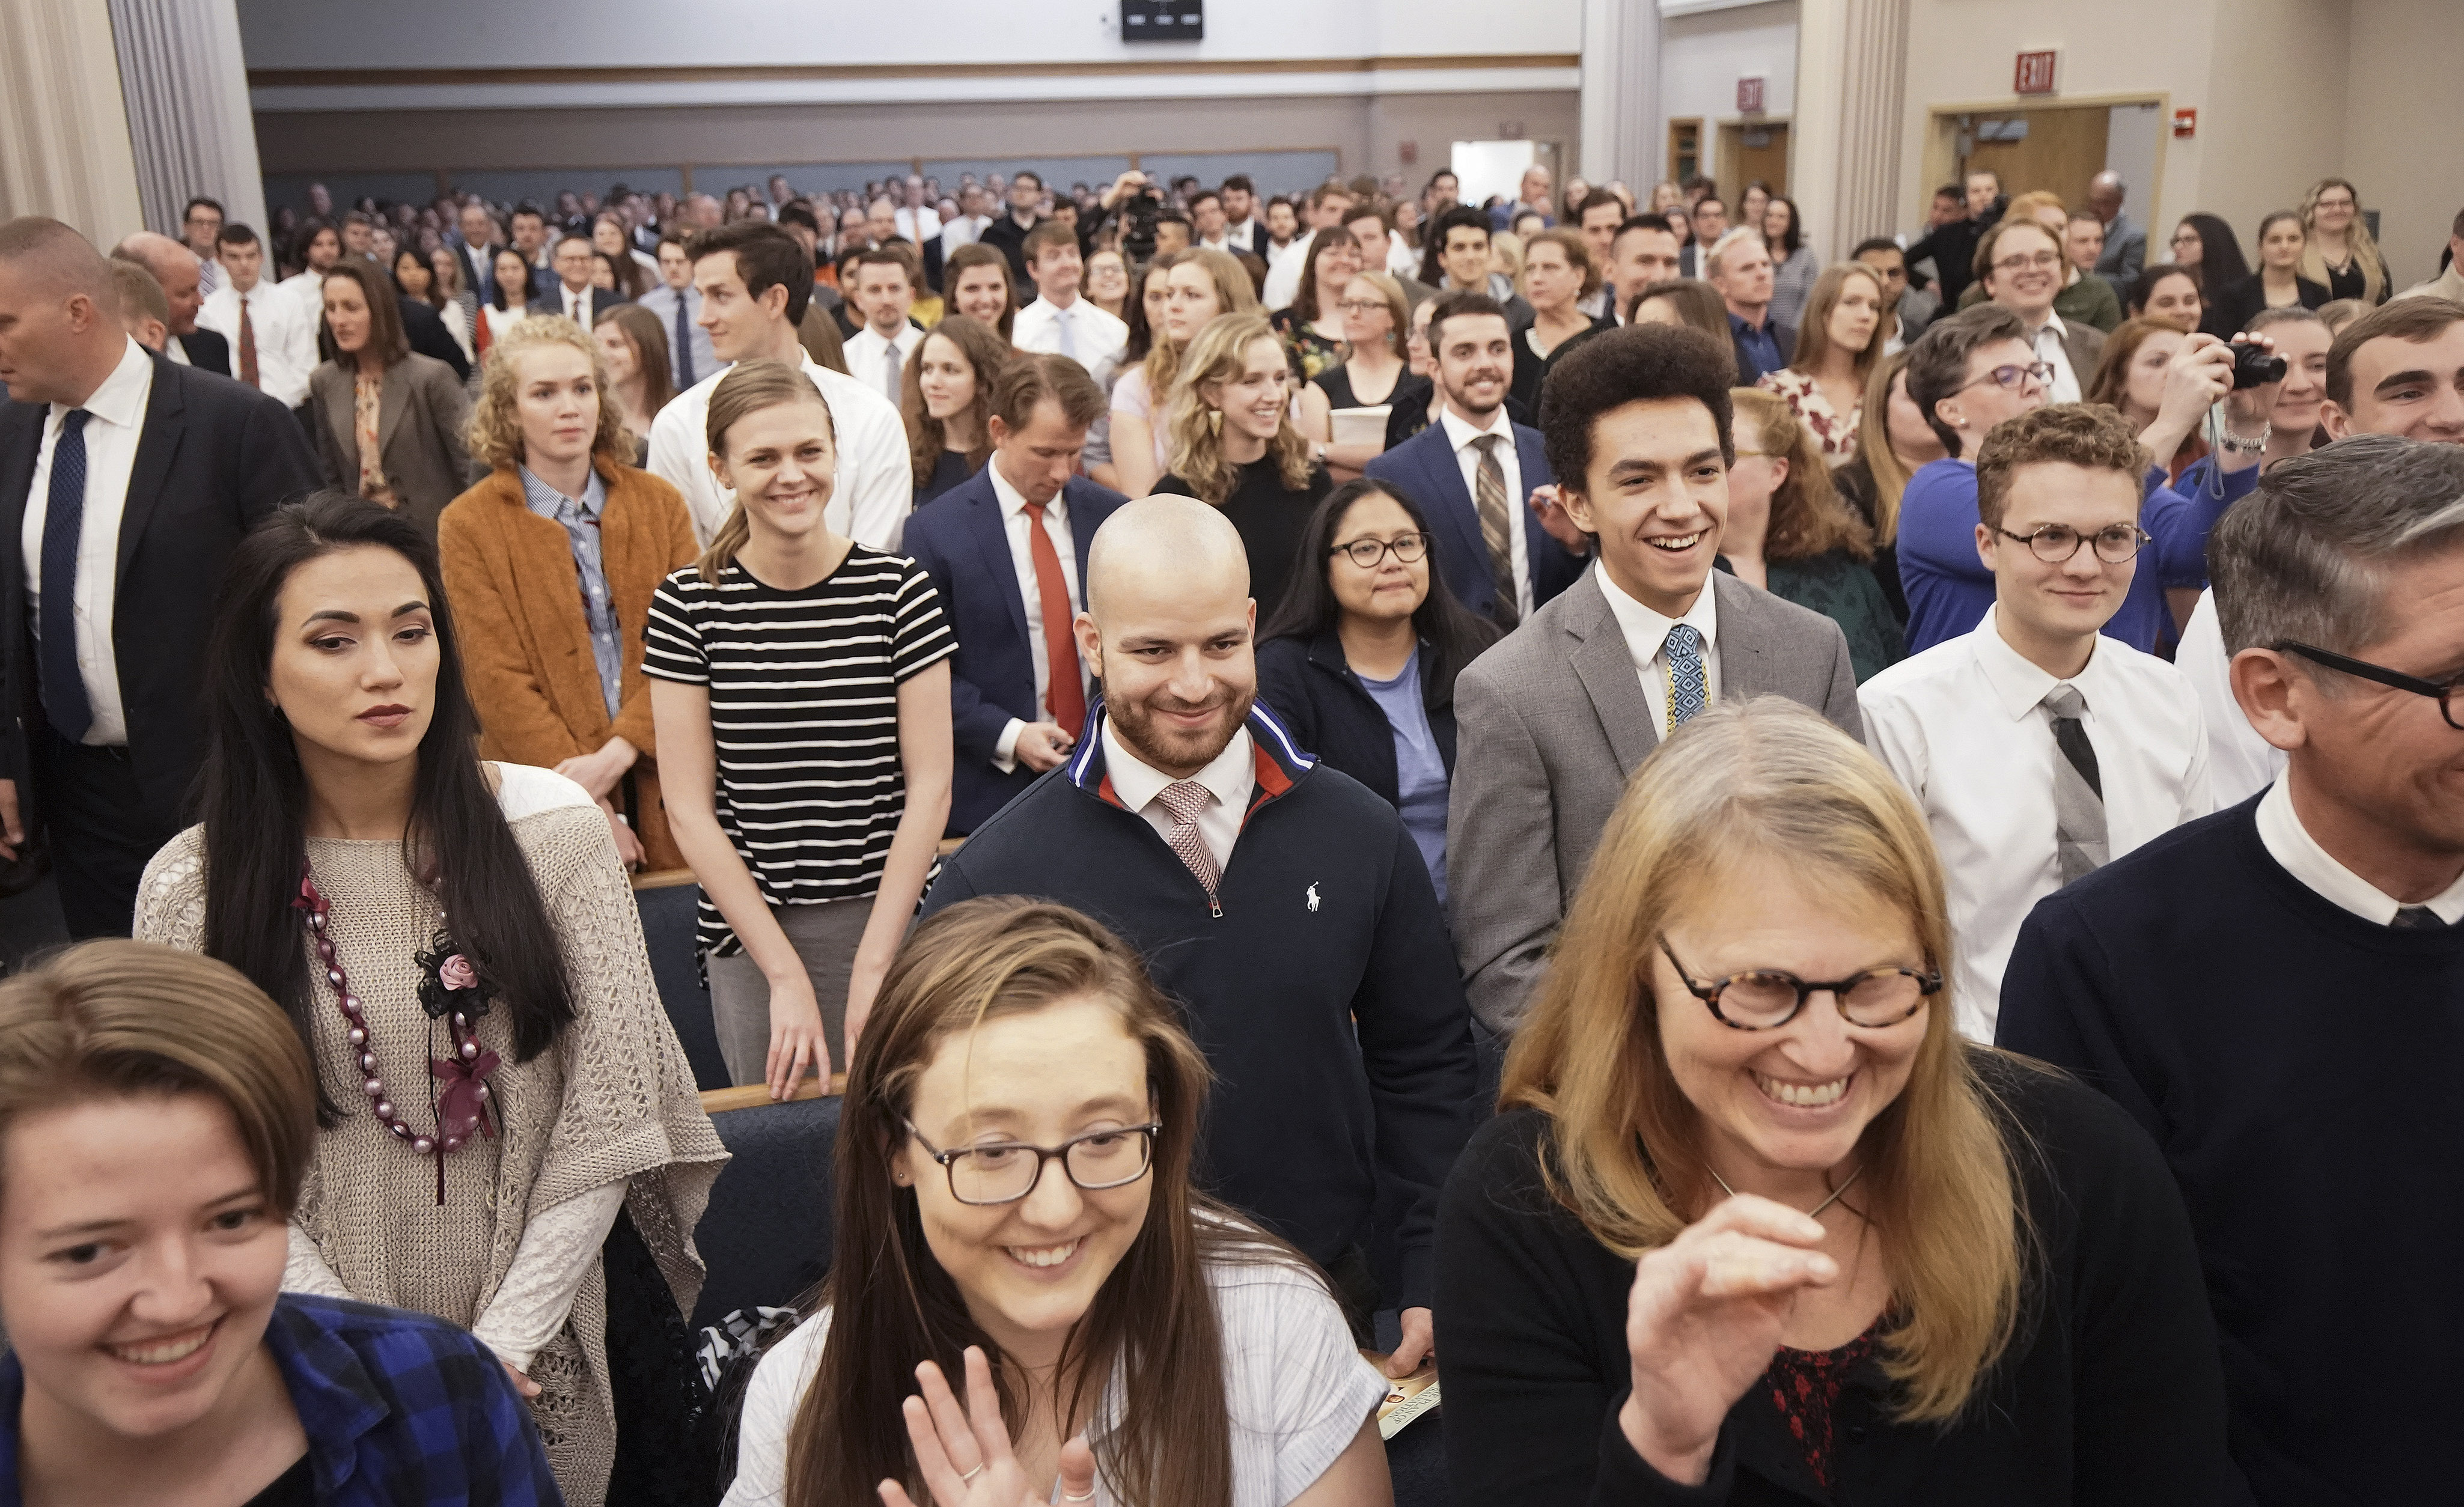 Attendees watch as President M. Russell Ballard, acting president of the Quorum of the Twelve Apostles of The Church of Jesus Christ of Latter-day Saints, enters the stake center in Boston on Saturday, Oct. 19, 2019.